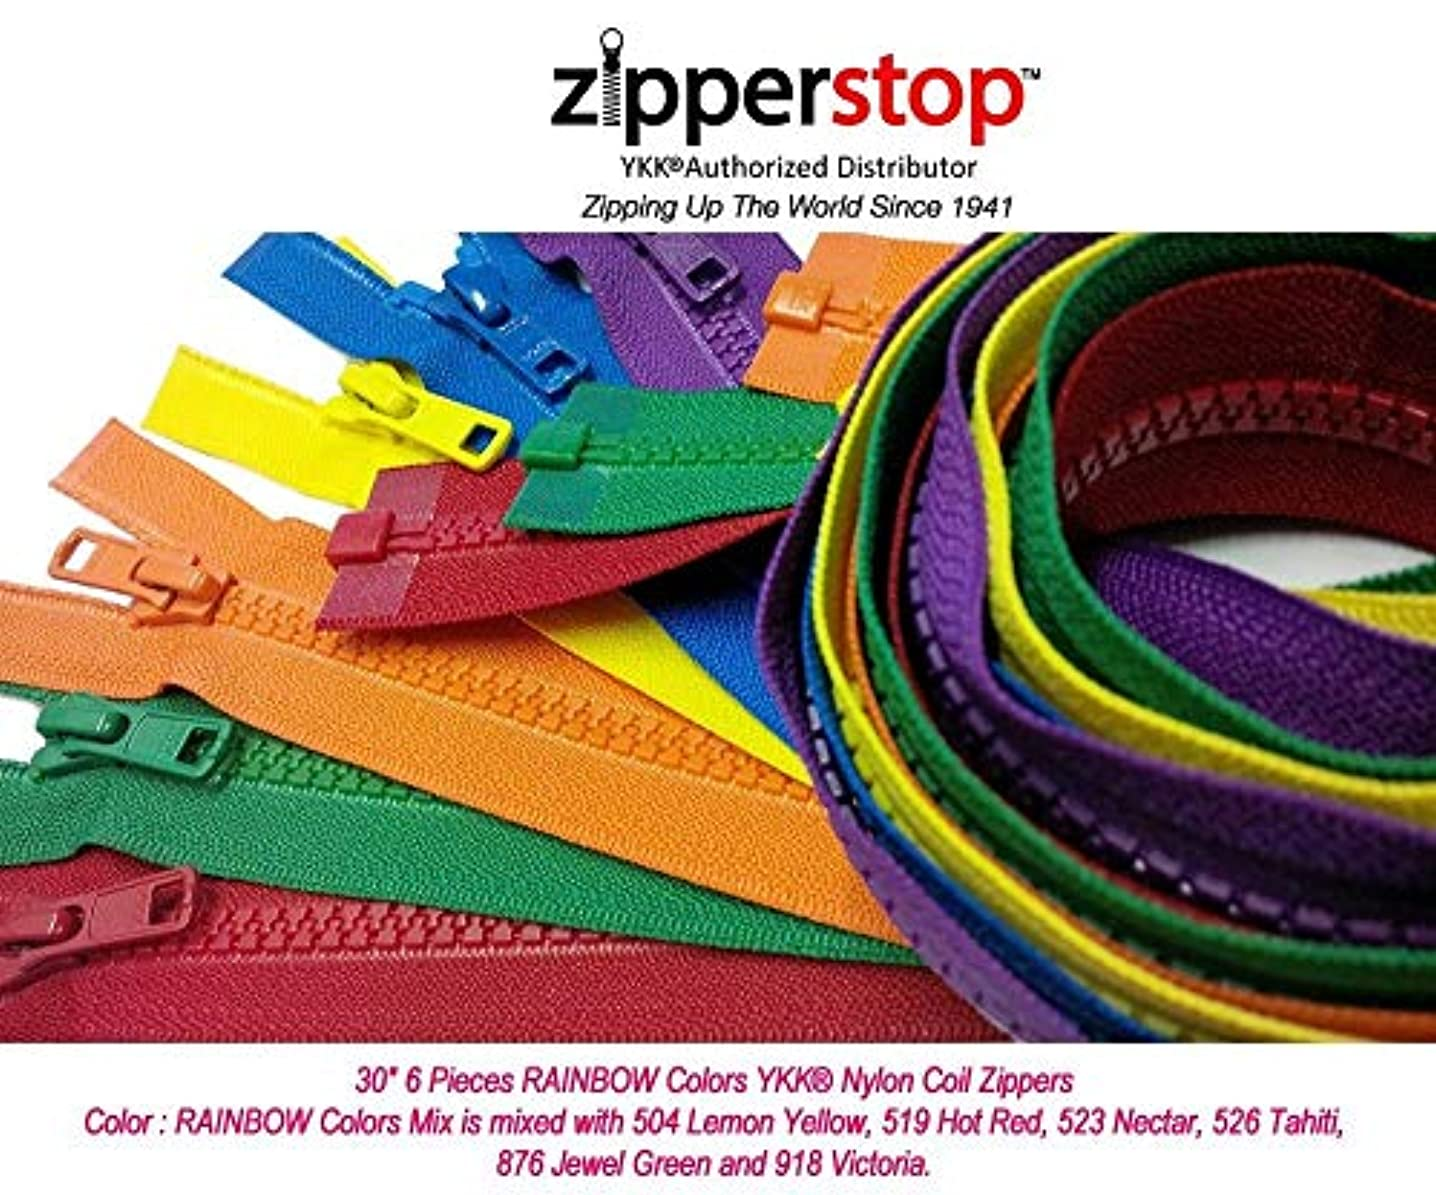 Zipperstop Wholesale YKK?- 30 Inch Vislon Sport Jacket Zippers for All Special Occasions YKK? #5 Molded Plastic Separating in Rainbow Colors Mix Is Mixed with 504, 519, 523, 526, 876 and 918 Made in USA